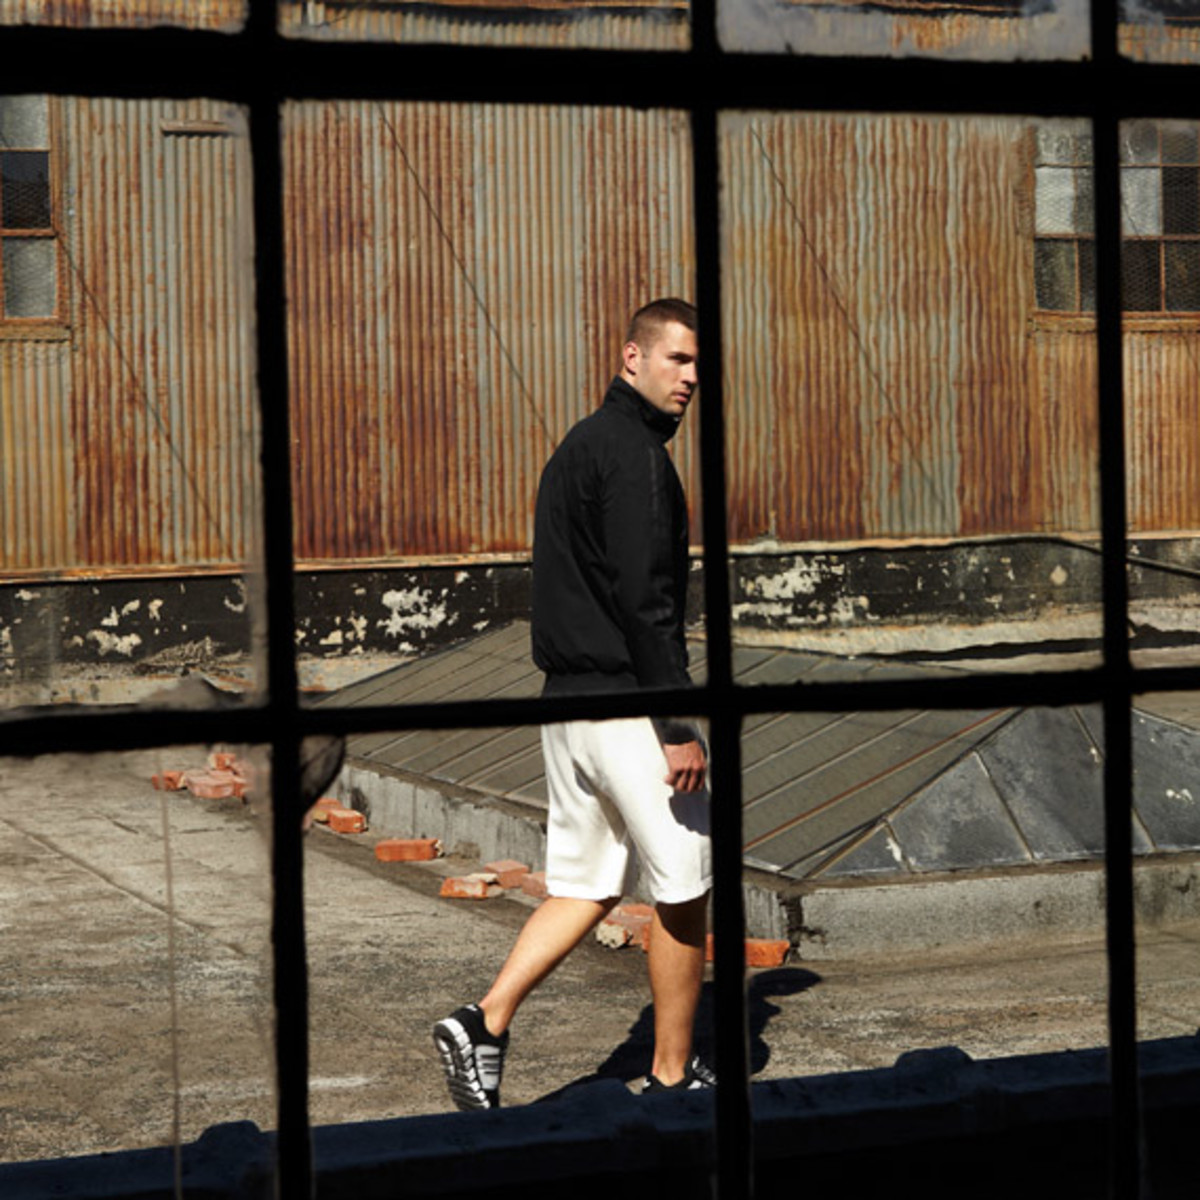 adidas-originals-david-beckham-james-bond-ss2012-07